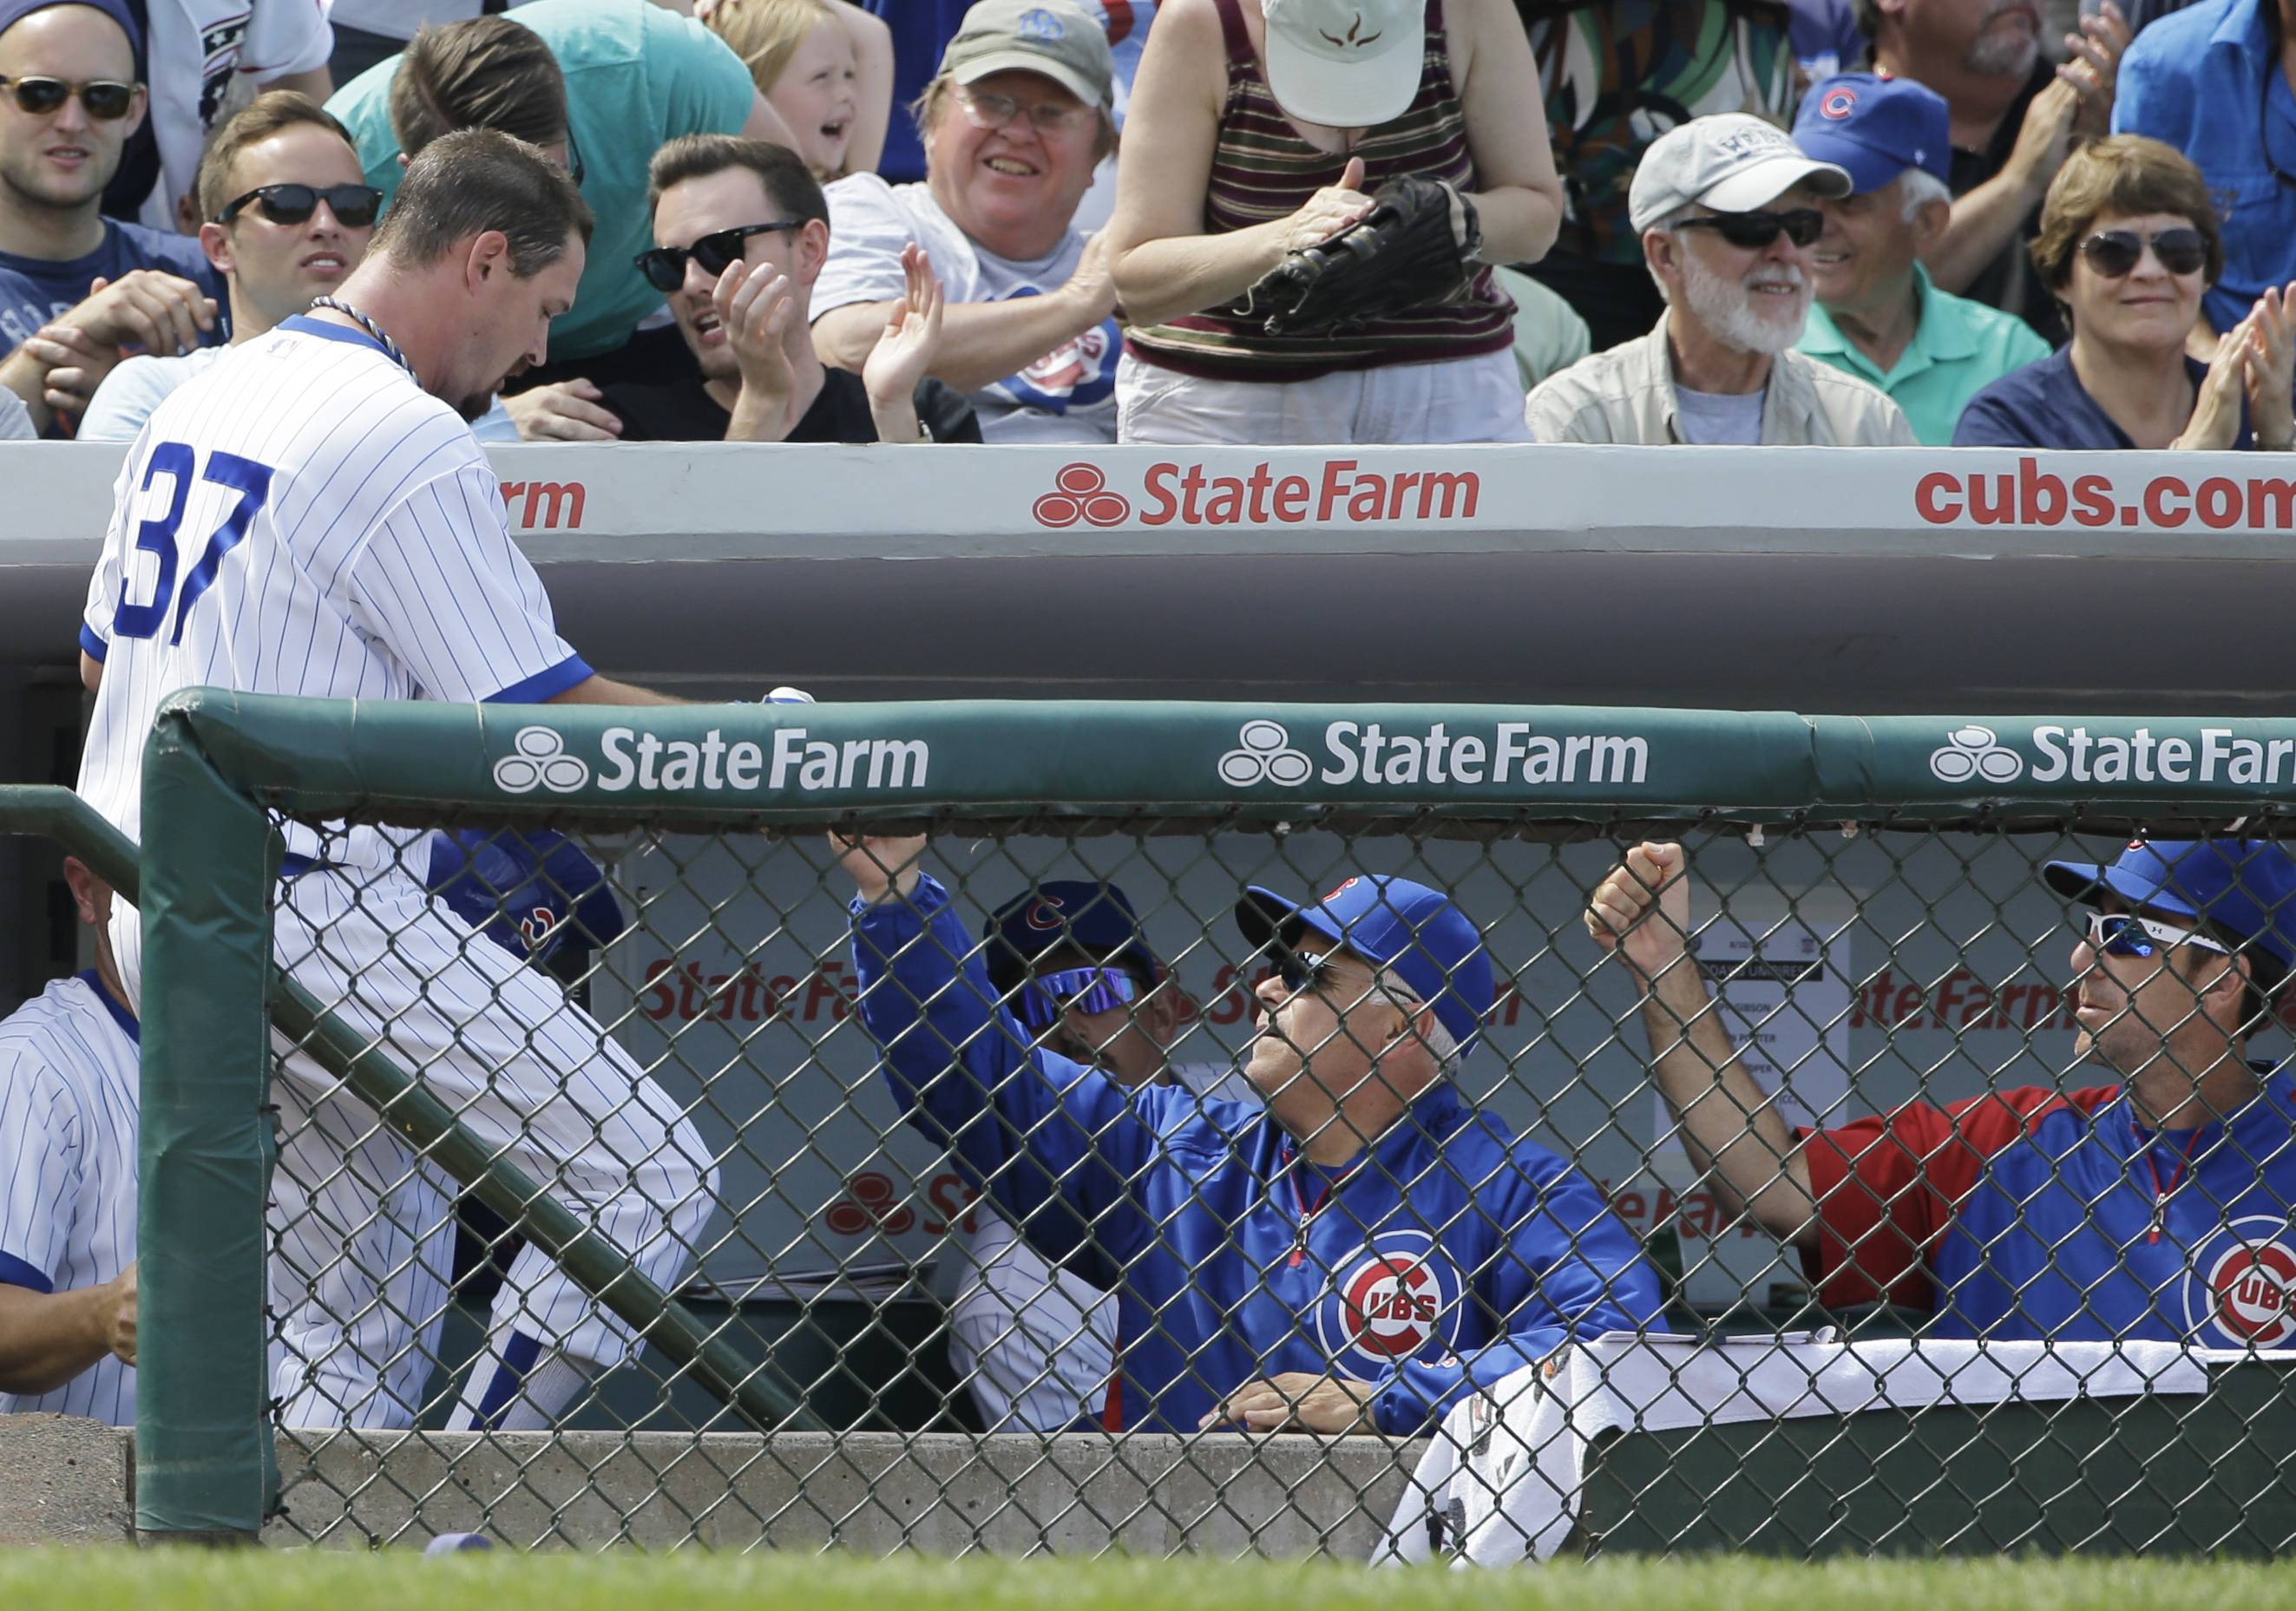 Chicago Cubs' Travis Wood, left, celebrates with manager Rick Renteria after scoring on a single hit by Javier Baez during the fifth inning of an interleague baseball game Sunday against the Tampa Bay Rays in Chicago.